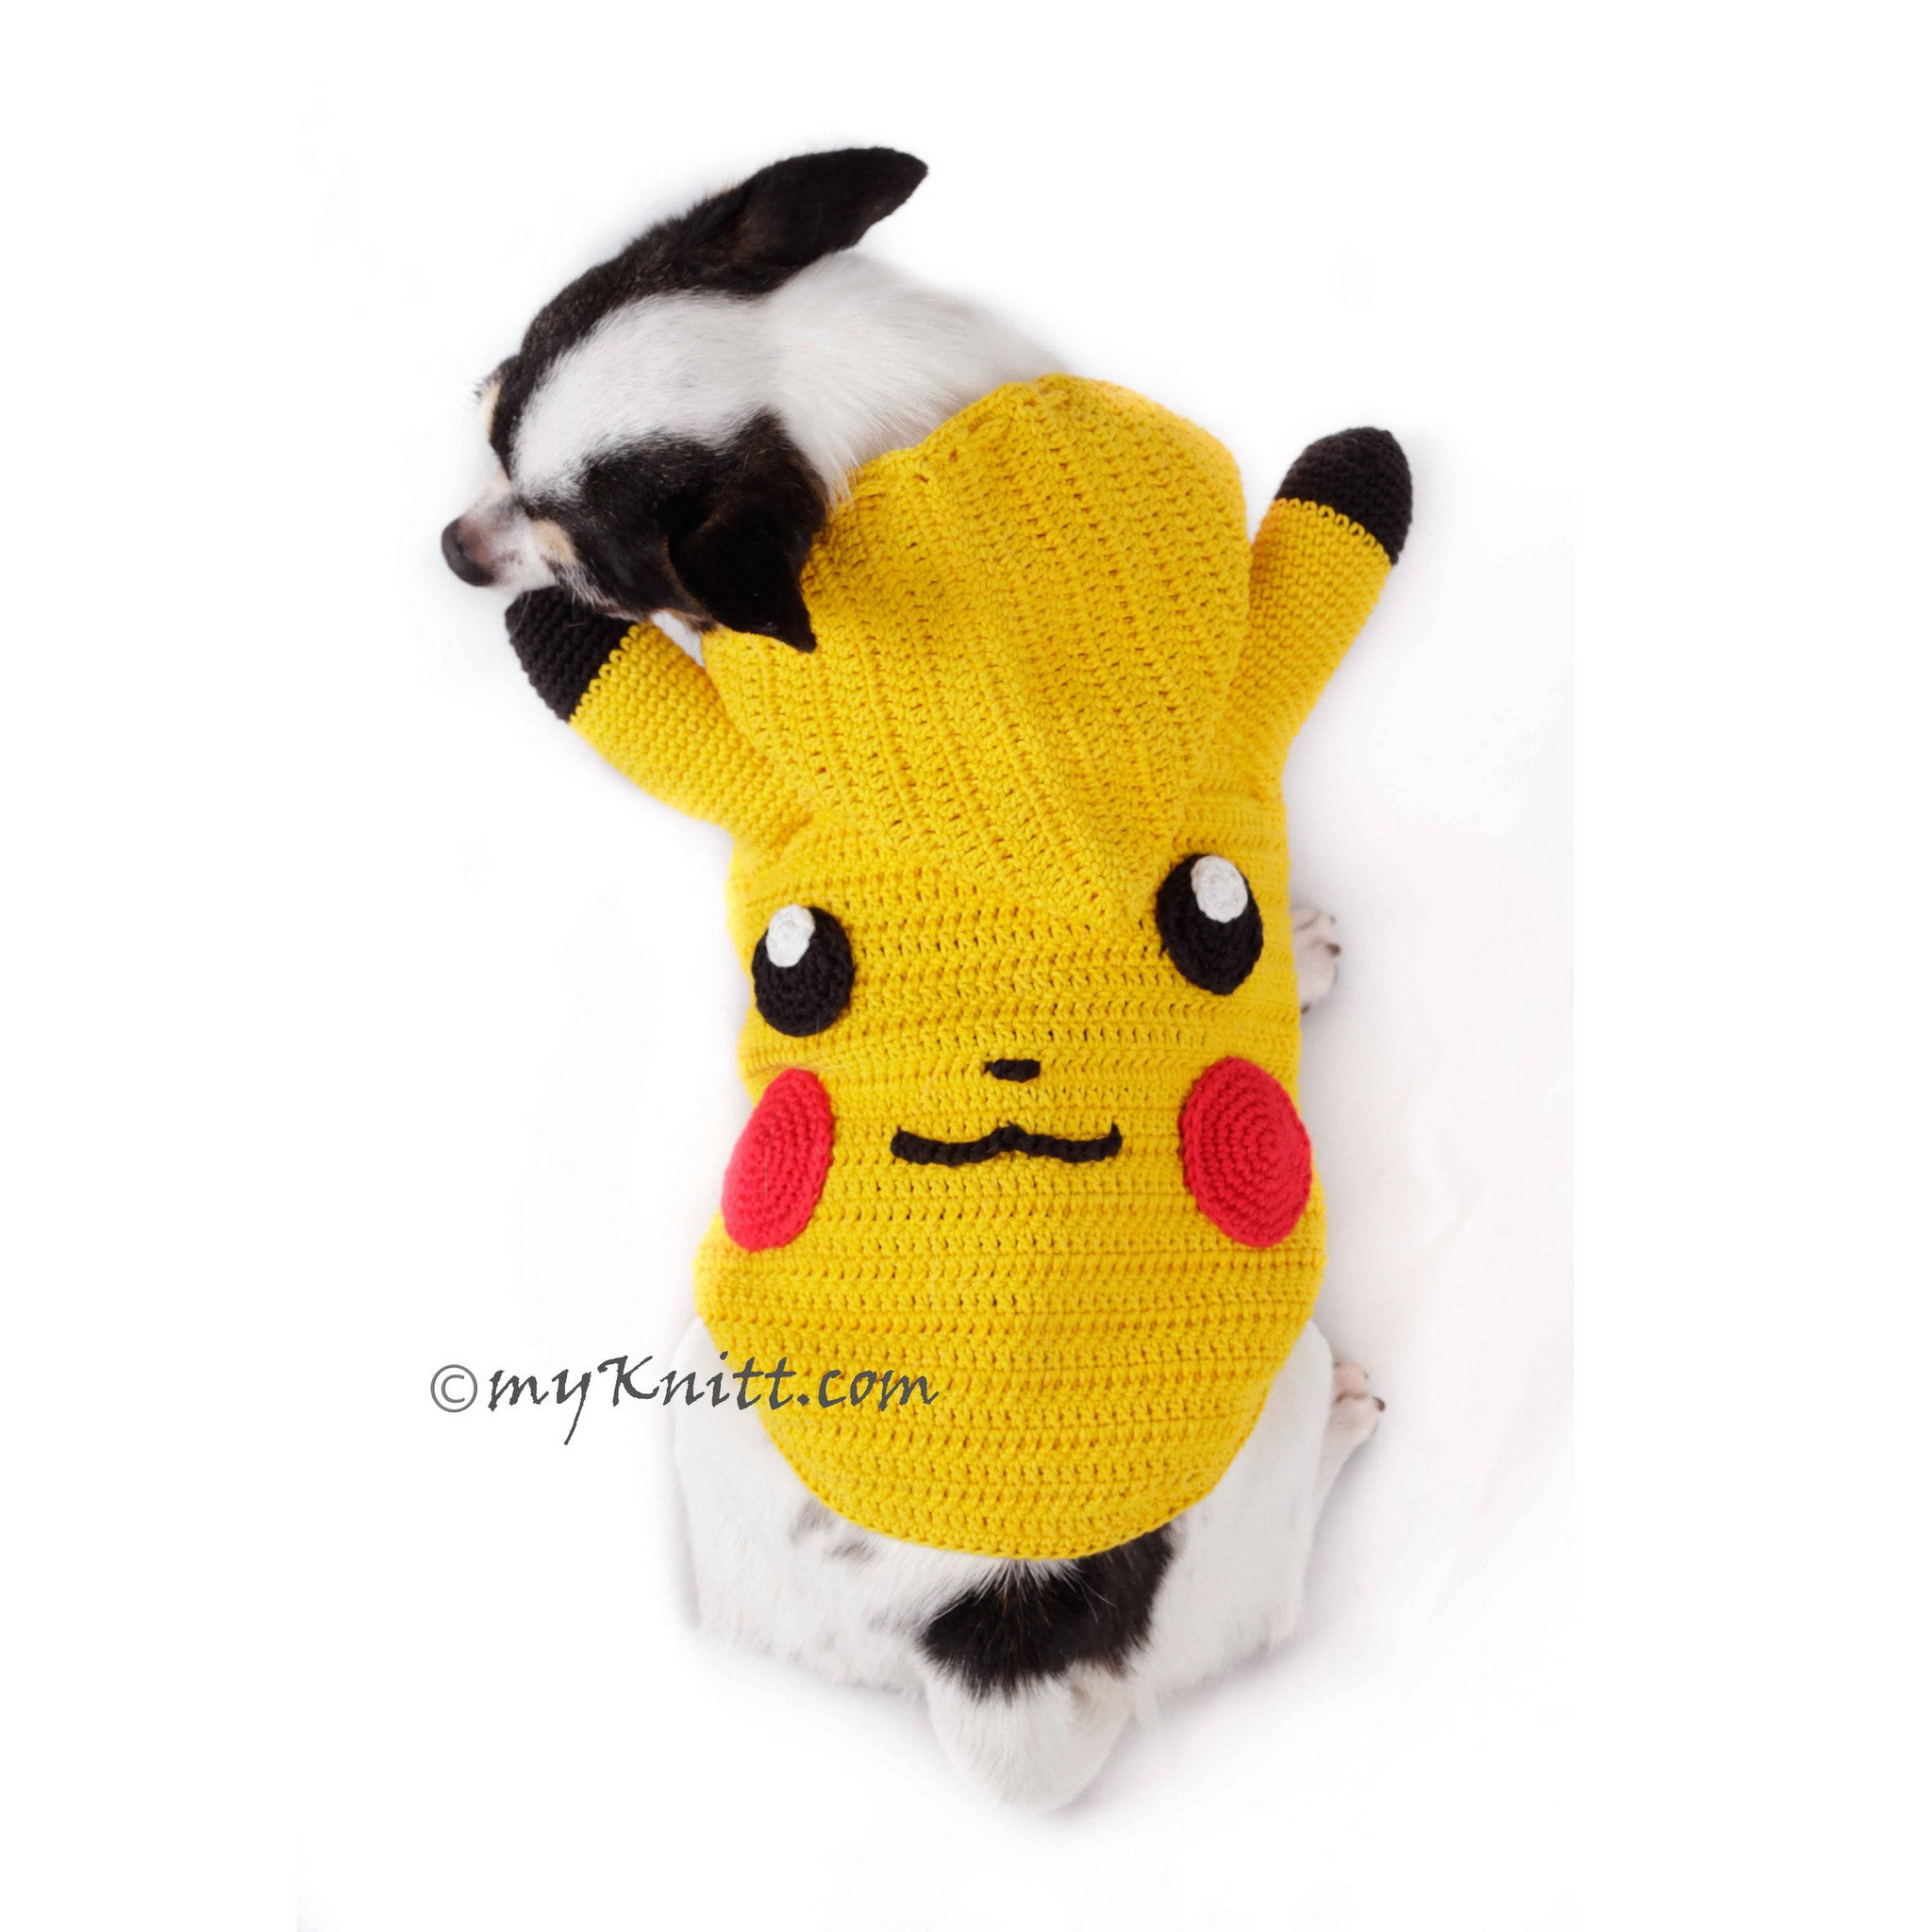 Pikachu Dog Hoodie Pokemon Go Pet Costume for Halloween DK784 - By Myknitt